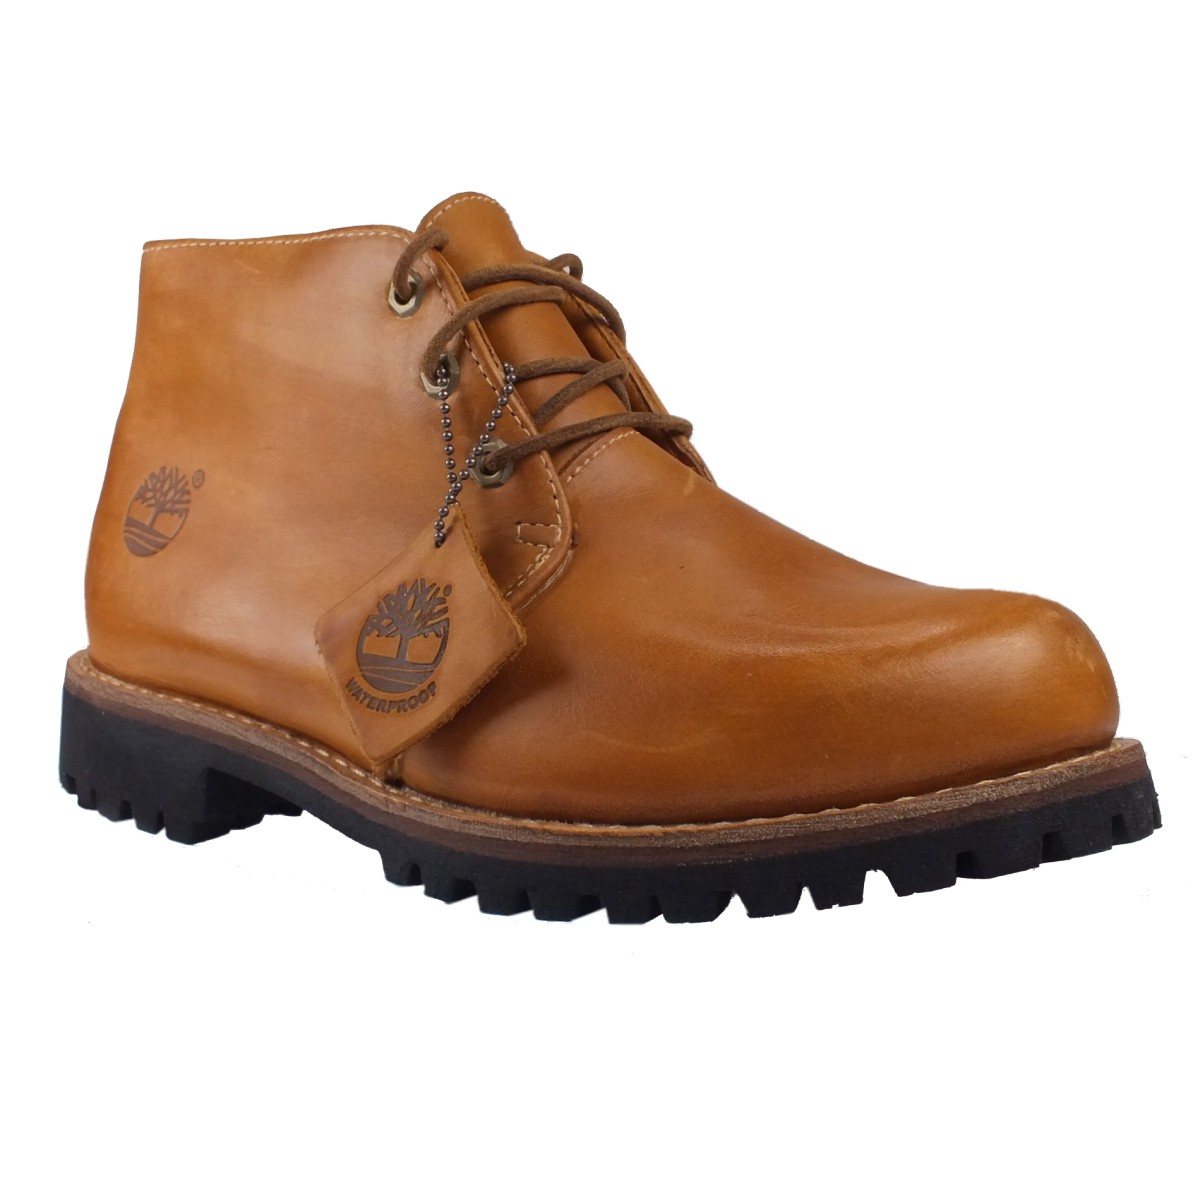 timberland men s ek heritage rugged wp chukka schuhe stiefel boots herren braun ebay. Black Bedroom Furniture Sets. Home Design Ideas